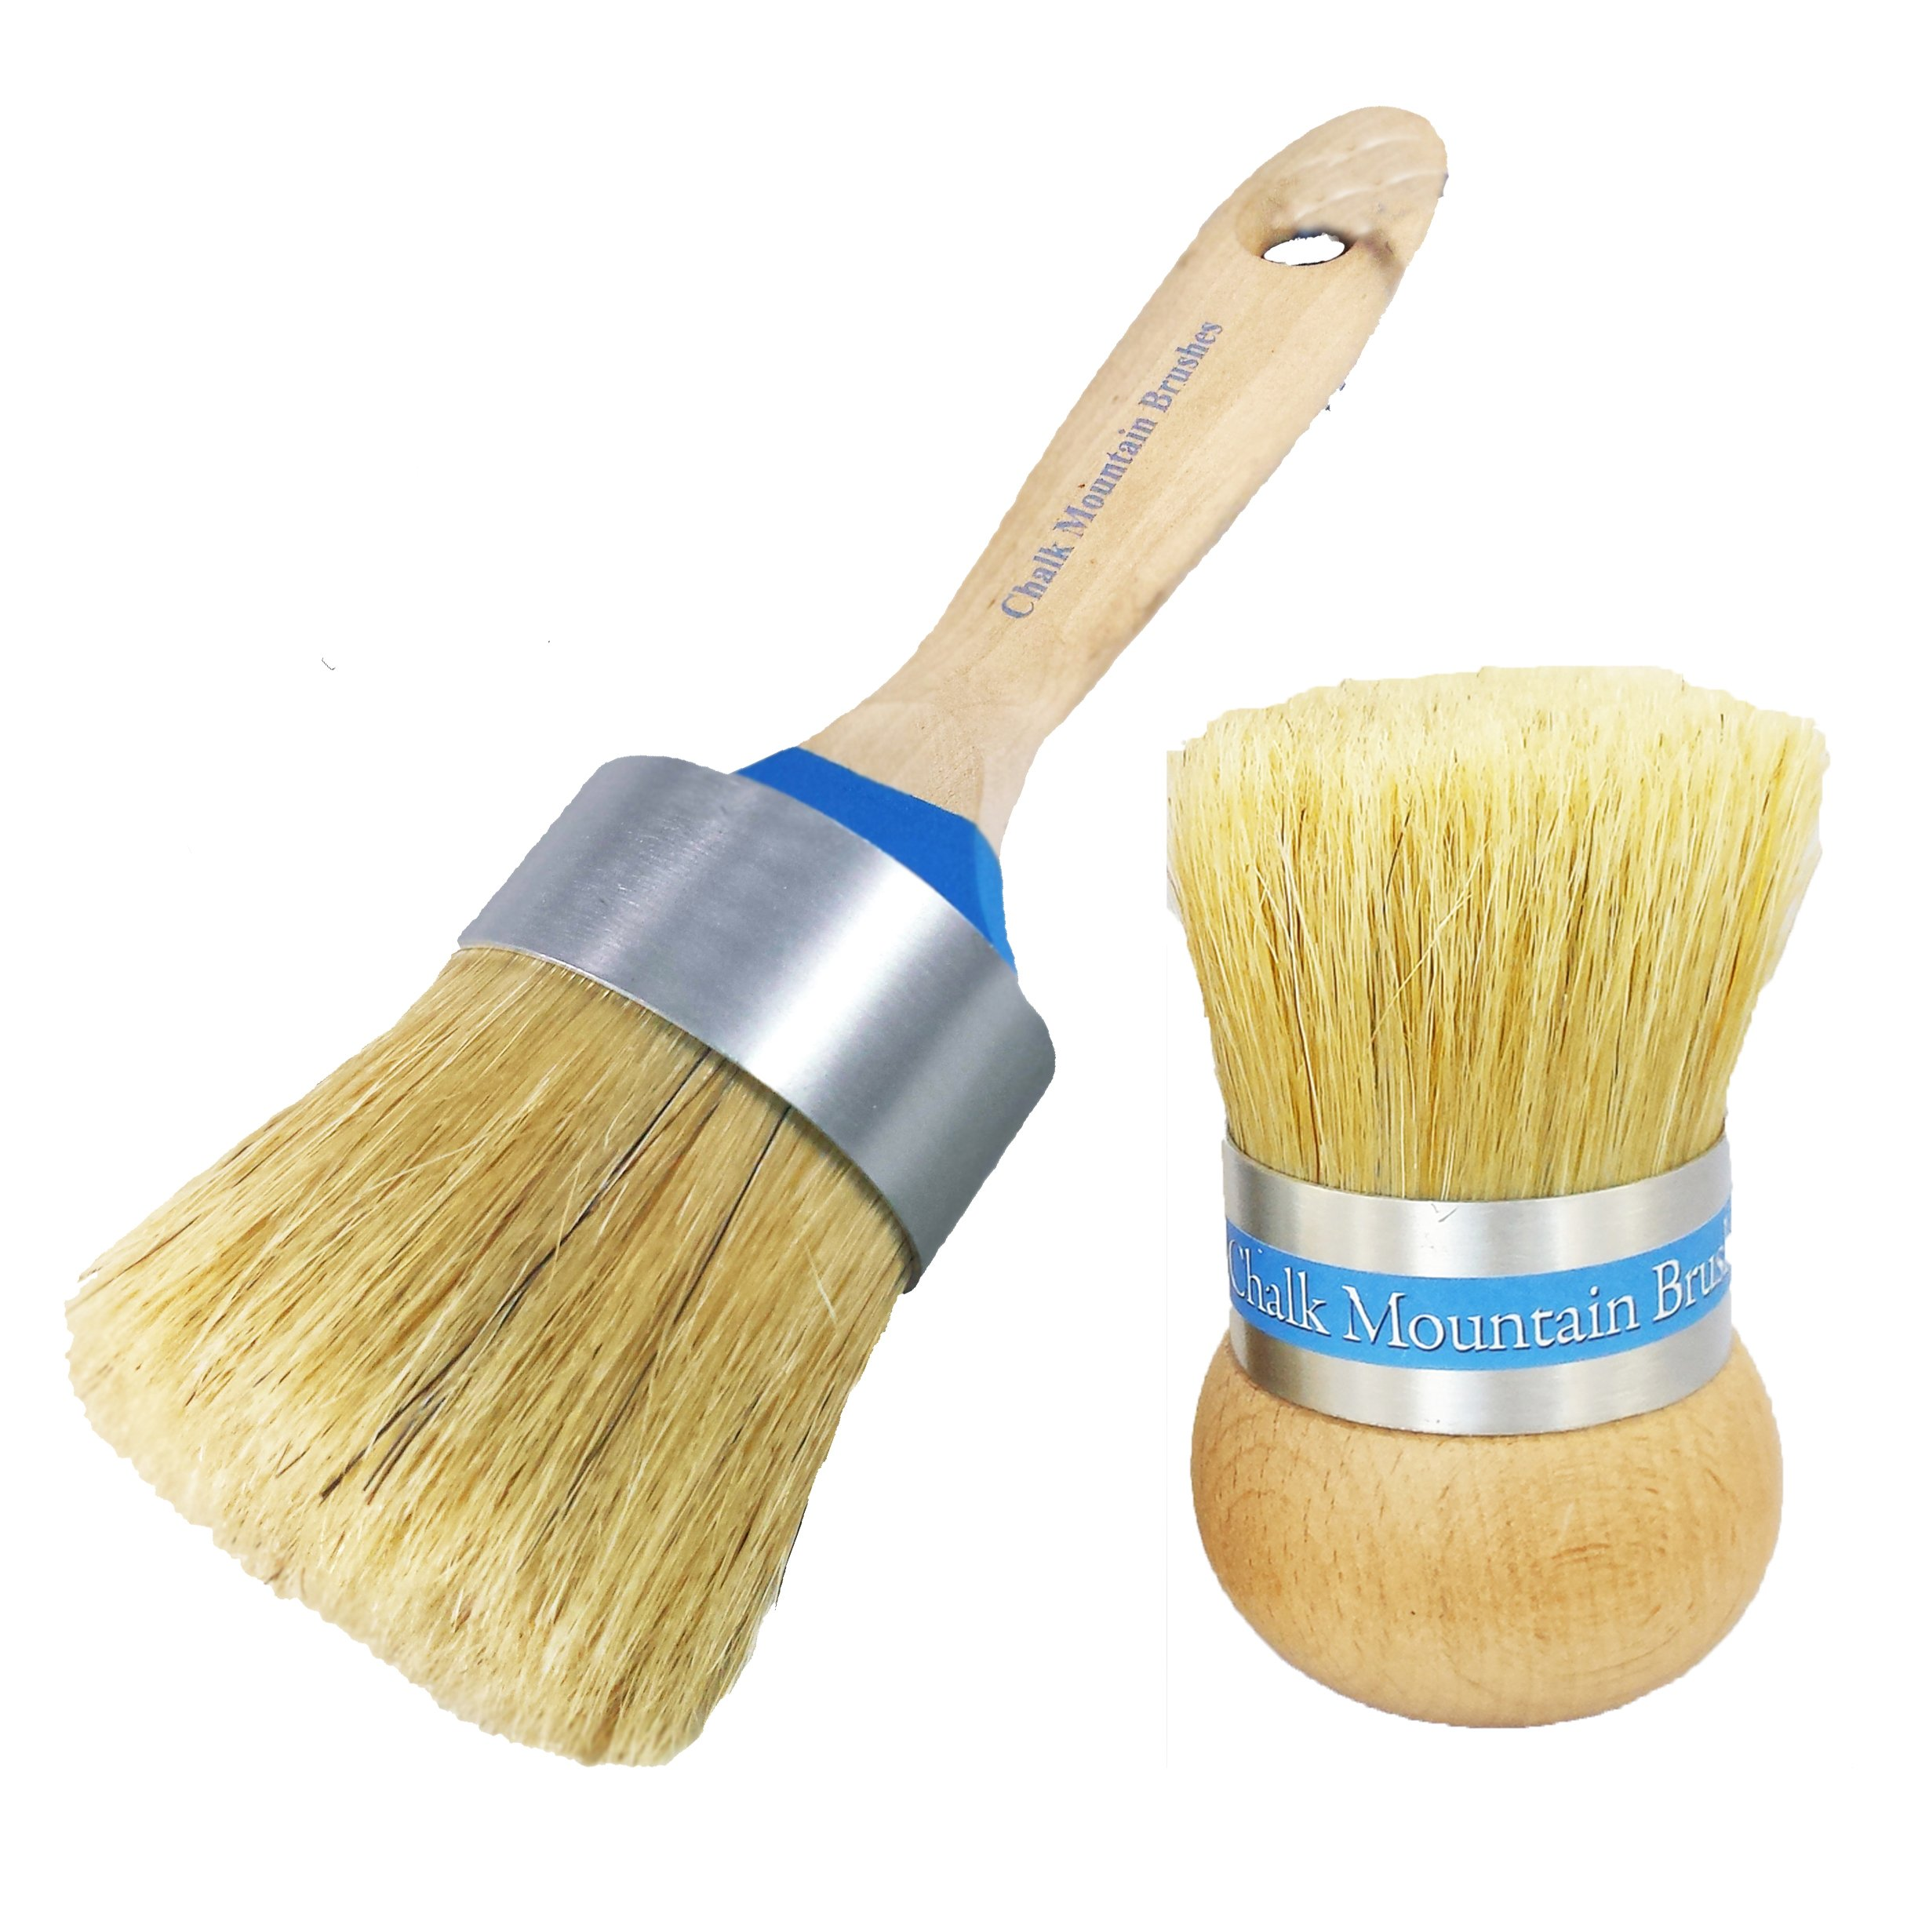 Chalk Mountain Brushes - Large Boar Hair Bristle Paint Brush & Large Palm Wax, upholstery &/or Stencil Brush - Designed by Chalk Mountain for Maxiumum comfort